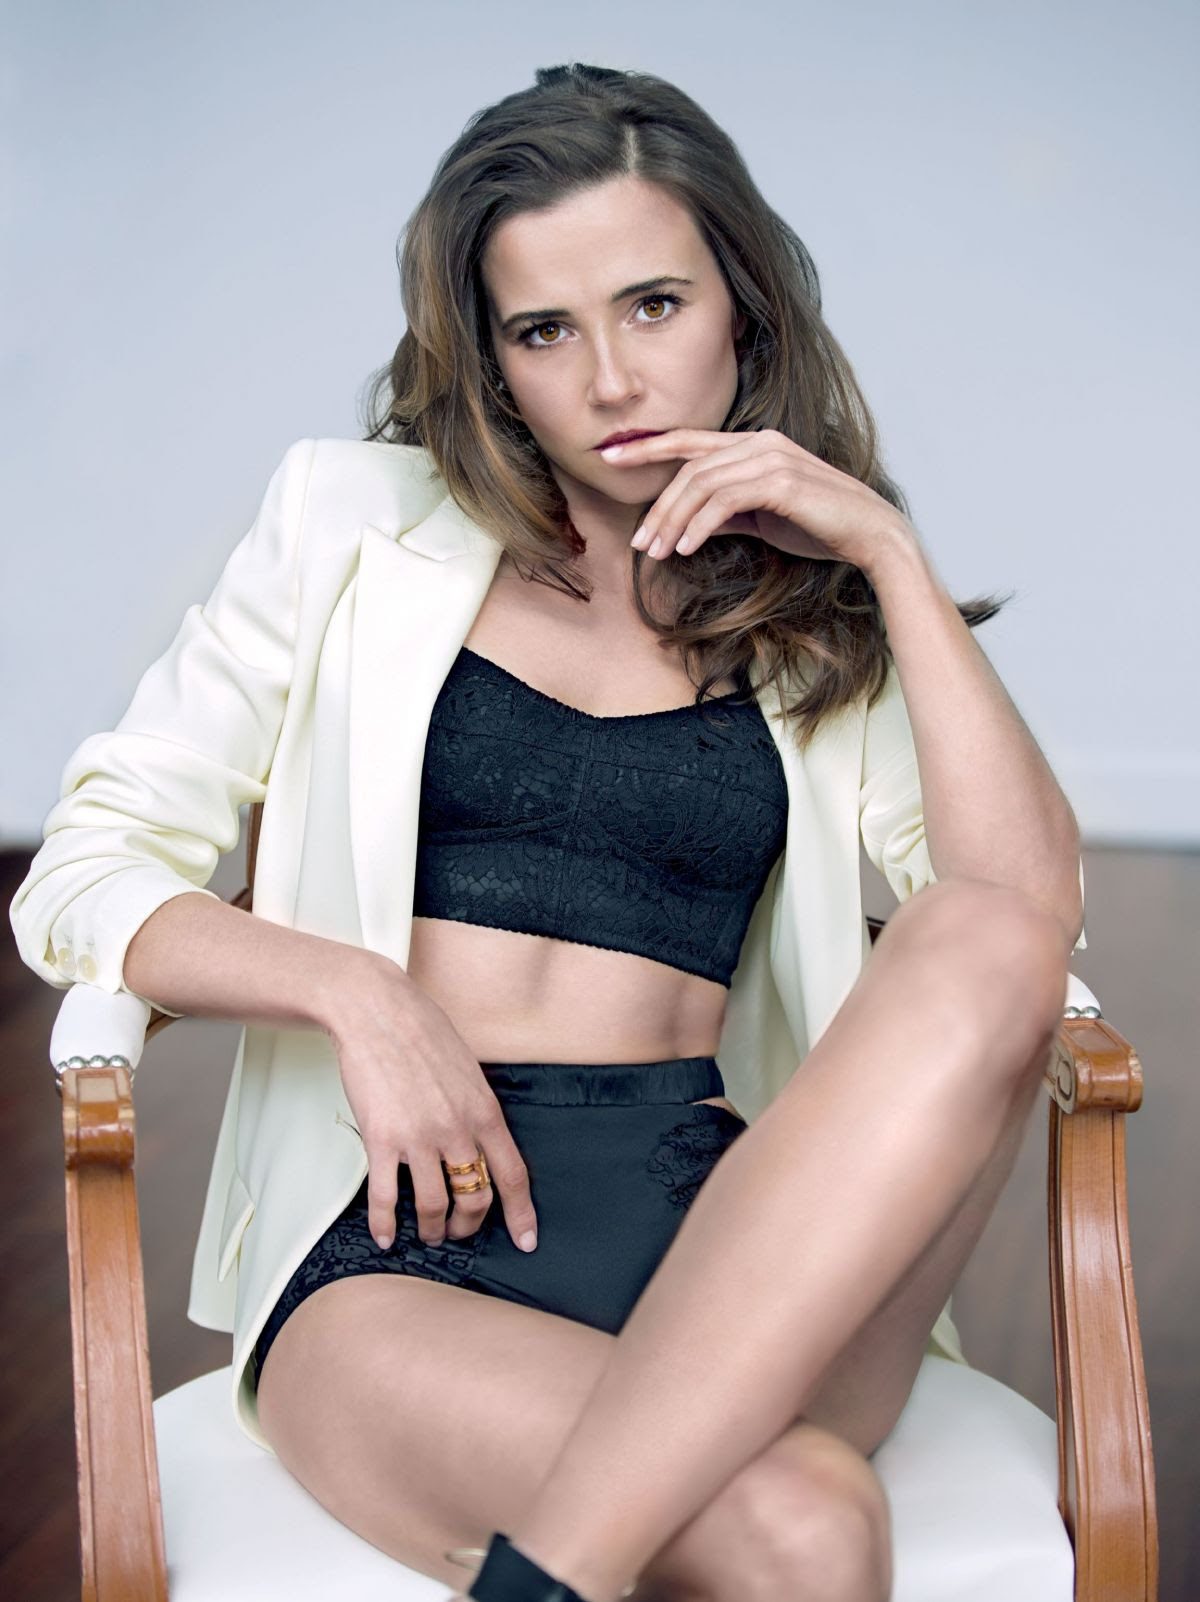 LINDA CARDELLINI in Sharp Magazine, April 2015 Issue